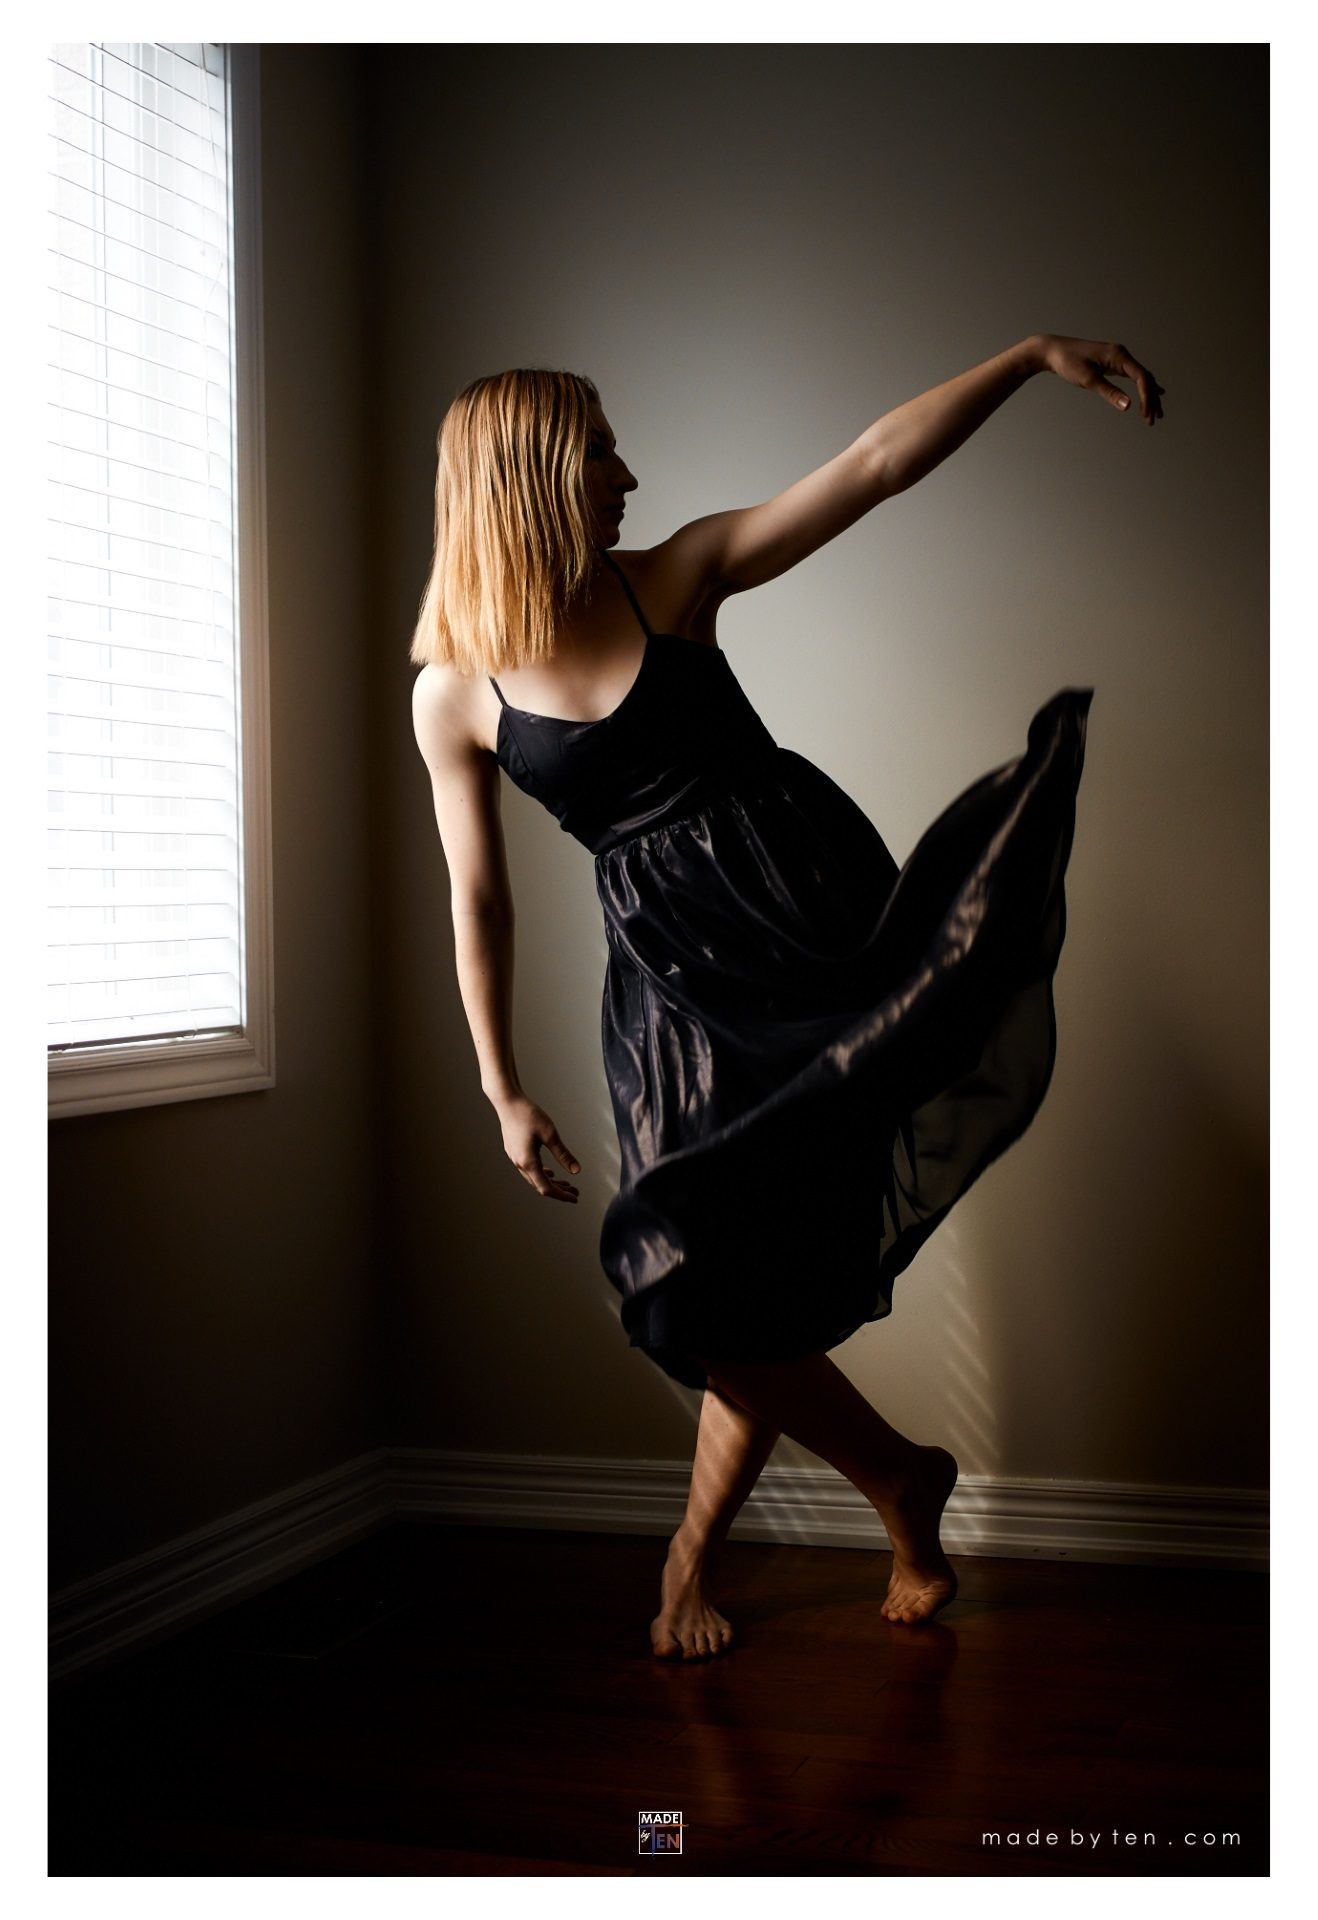 Made-by-Ten-Modern-Creative-Fine-Art-Portrait-Photography-GTA-Women-Toronto-Window-Light-Dancer-Painting-1